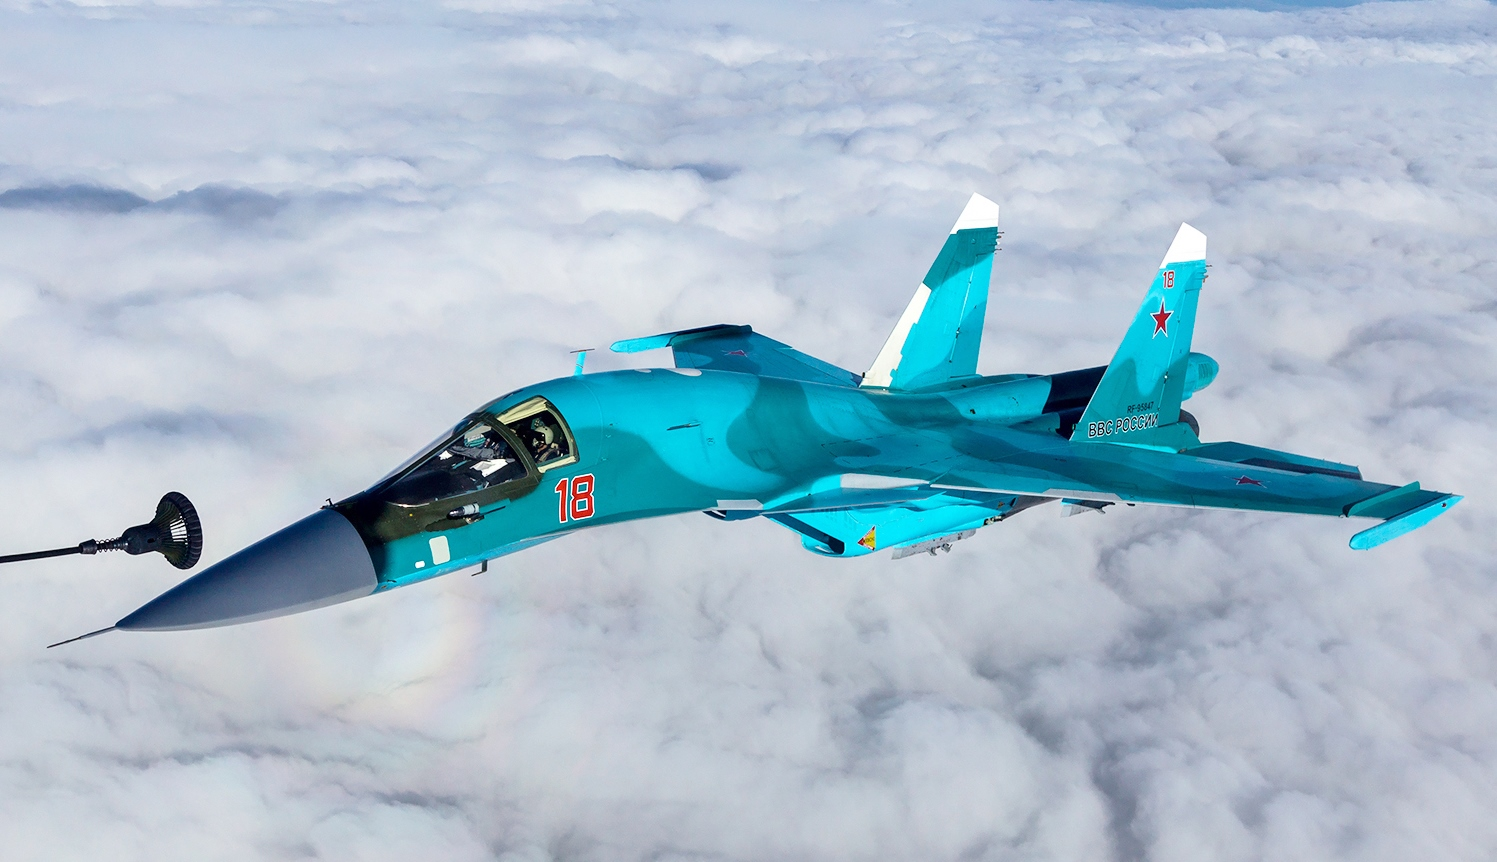 File:Refuelling a Sukhoi Su-34 (cropped).jpg - Wikimedia Commons